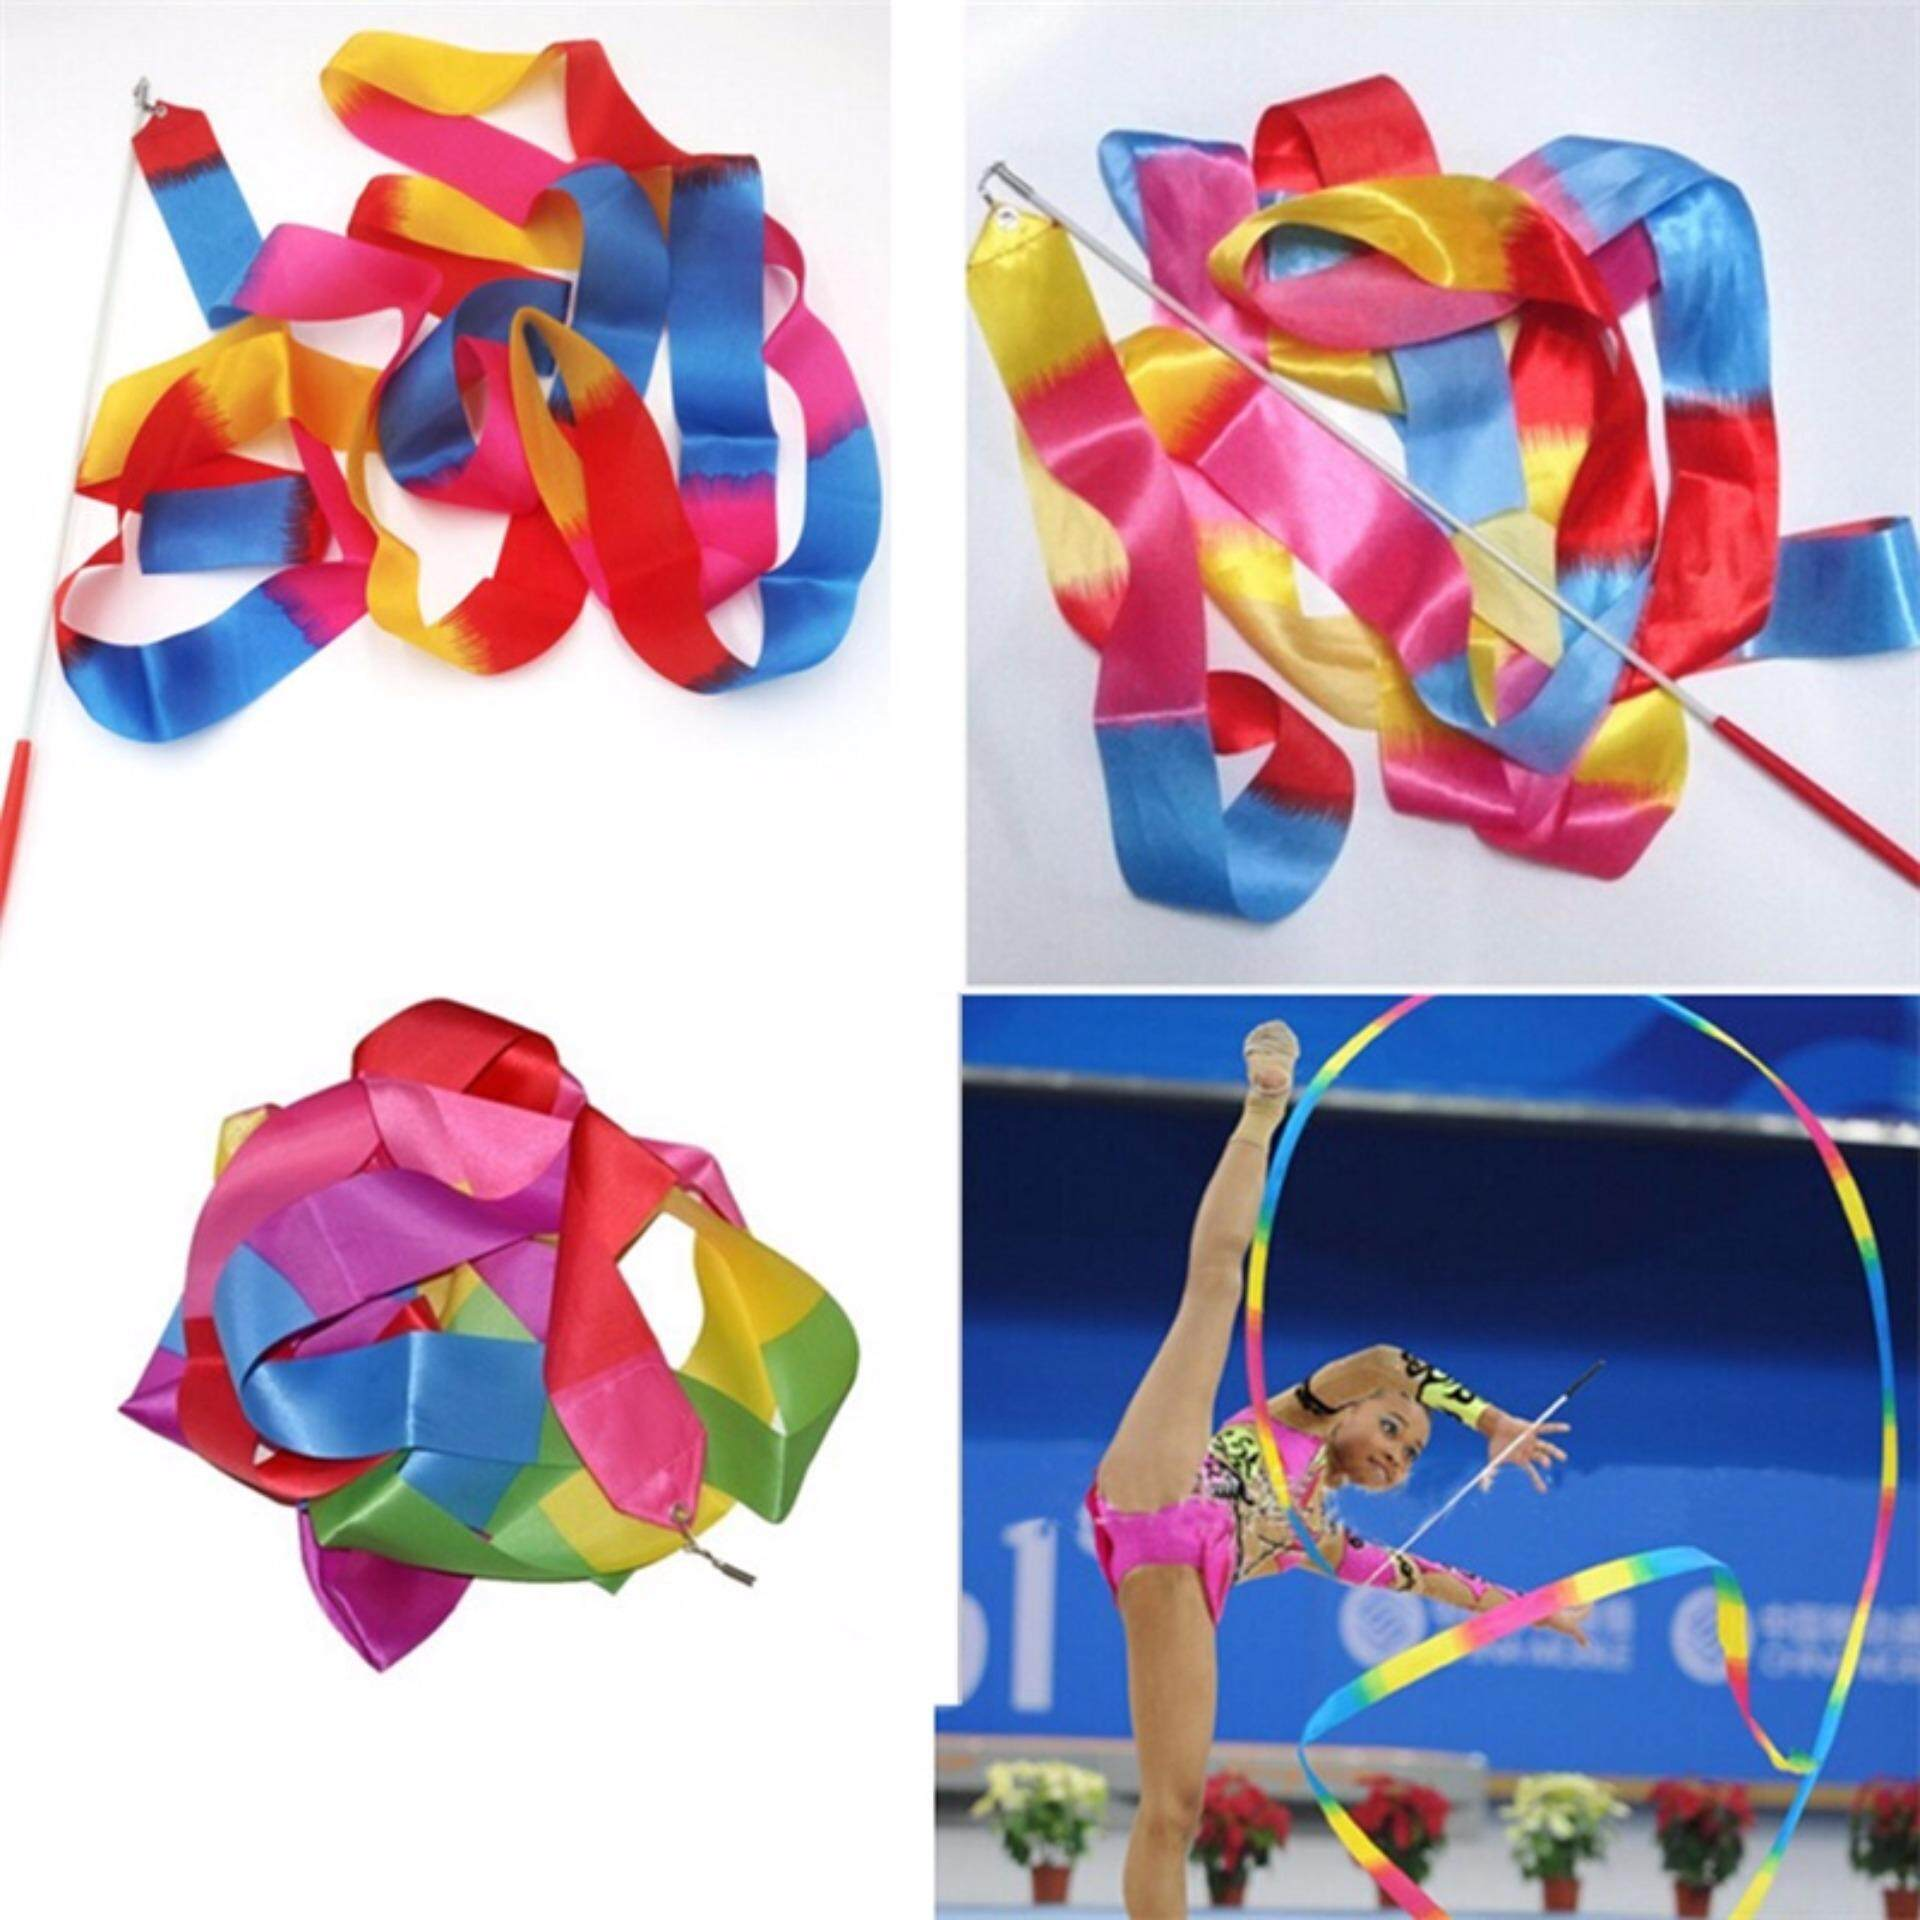 f4d95e0129 4m Kids Dance Ribbon Gym Rhythmic Art Gymnastic Ballet Streamer Twirling Rod